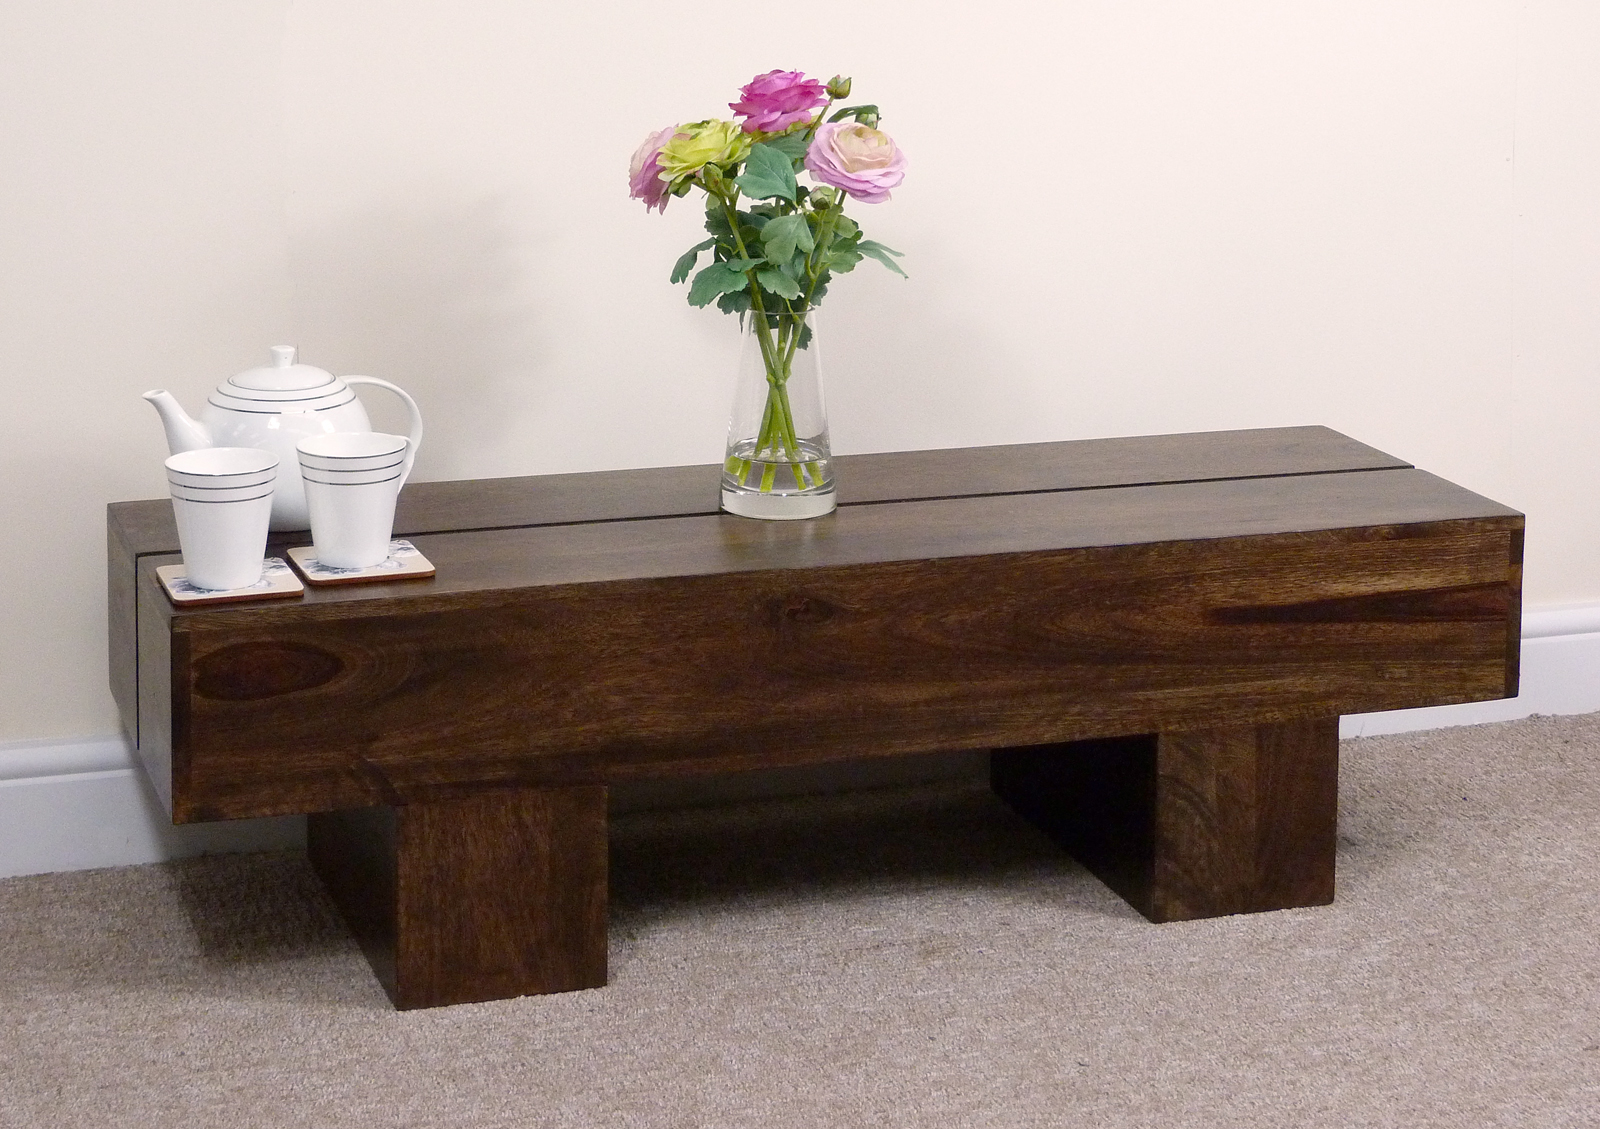 dark wood furniture. Rustic Dark Wood Coffee Table Image And Description Furniture L